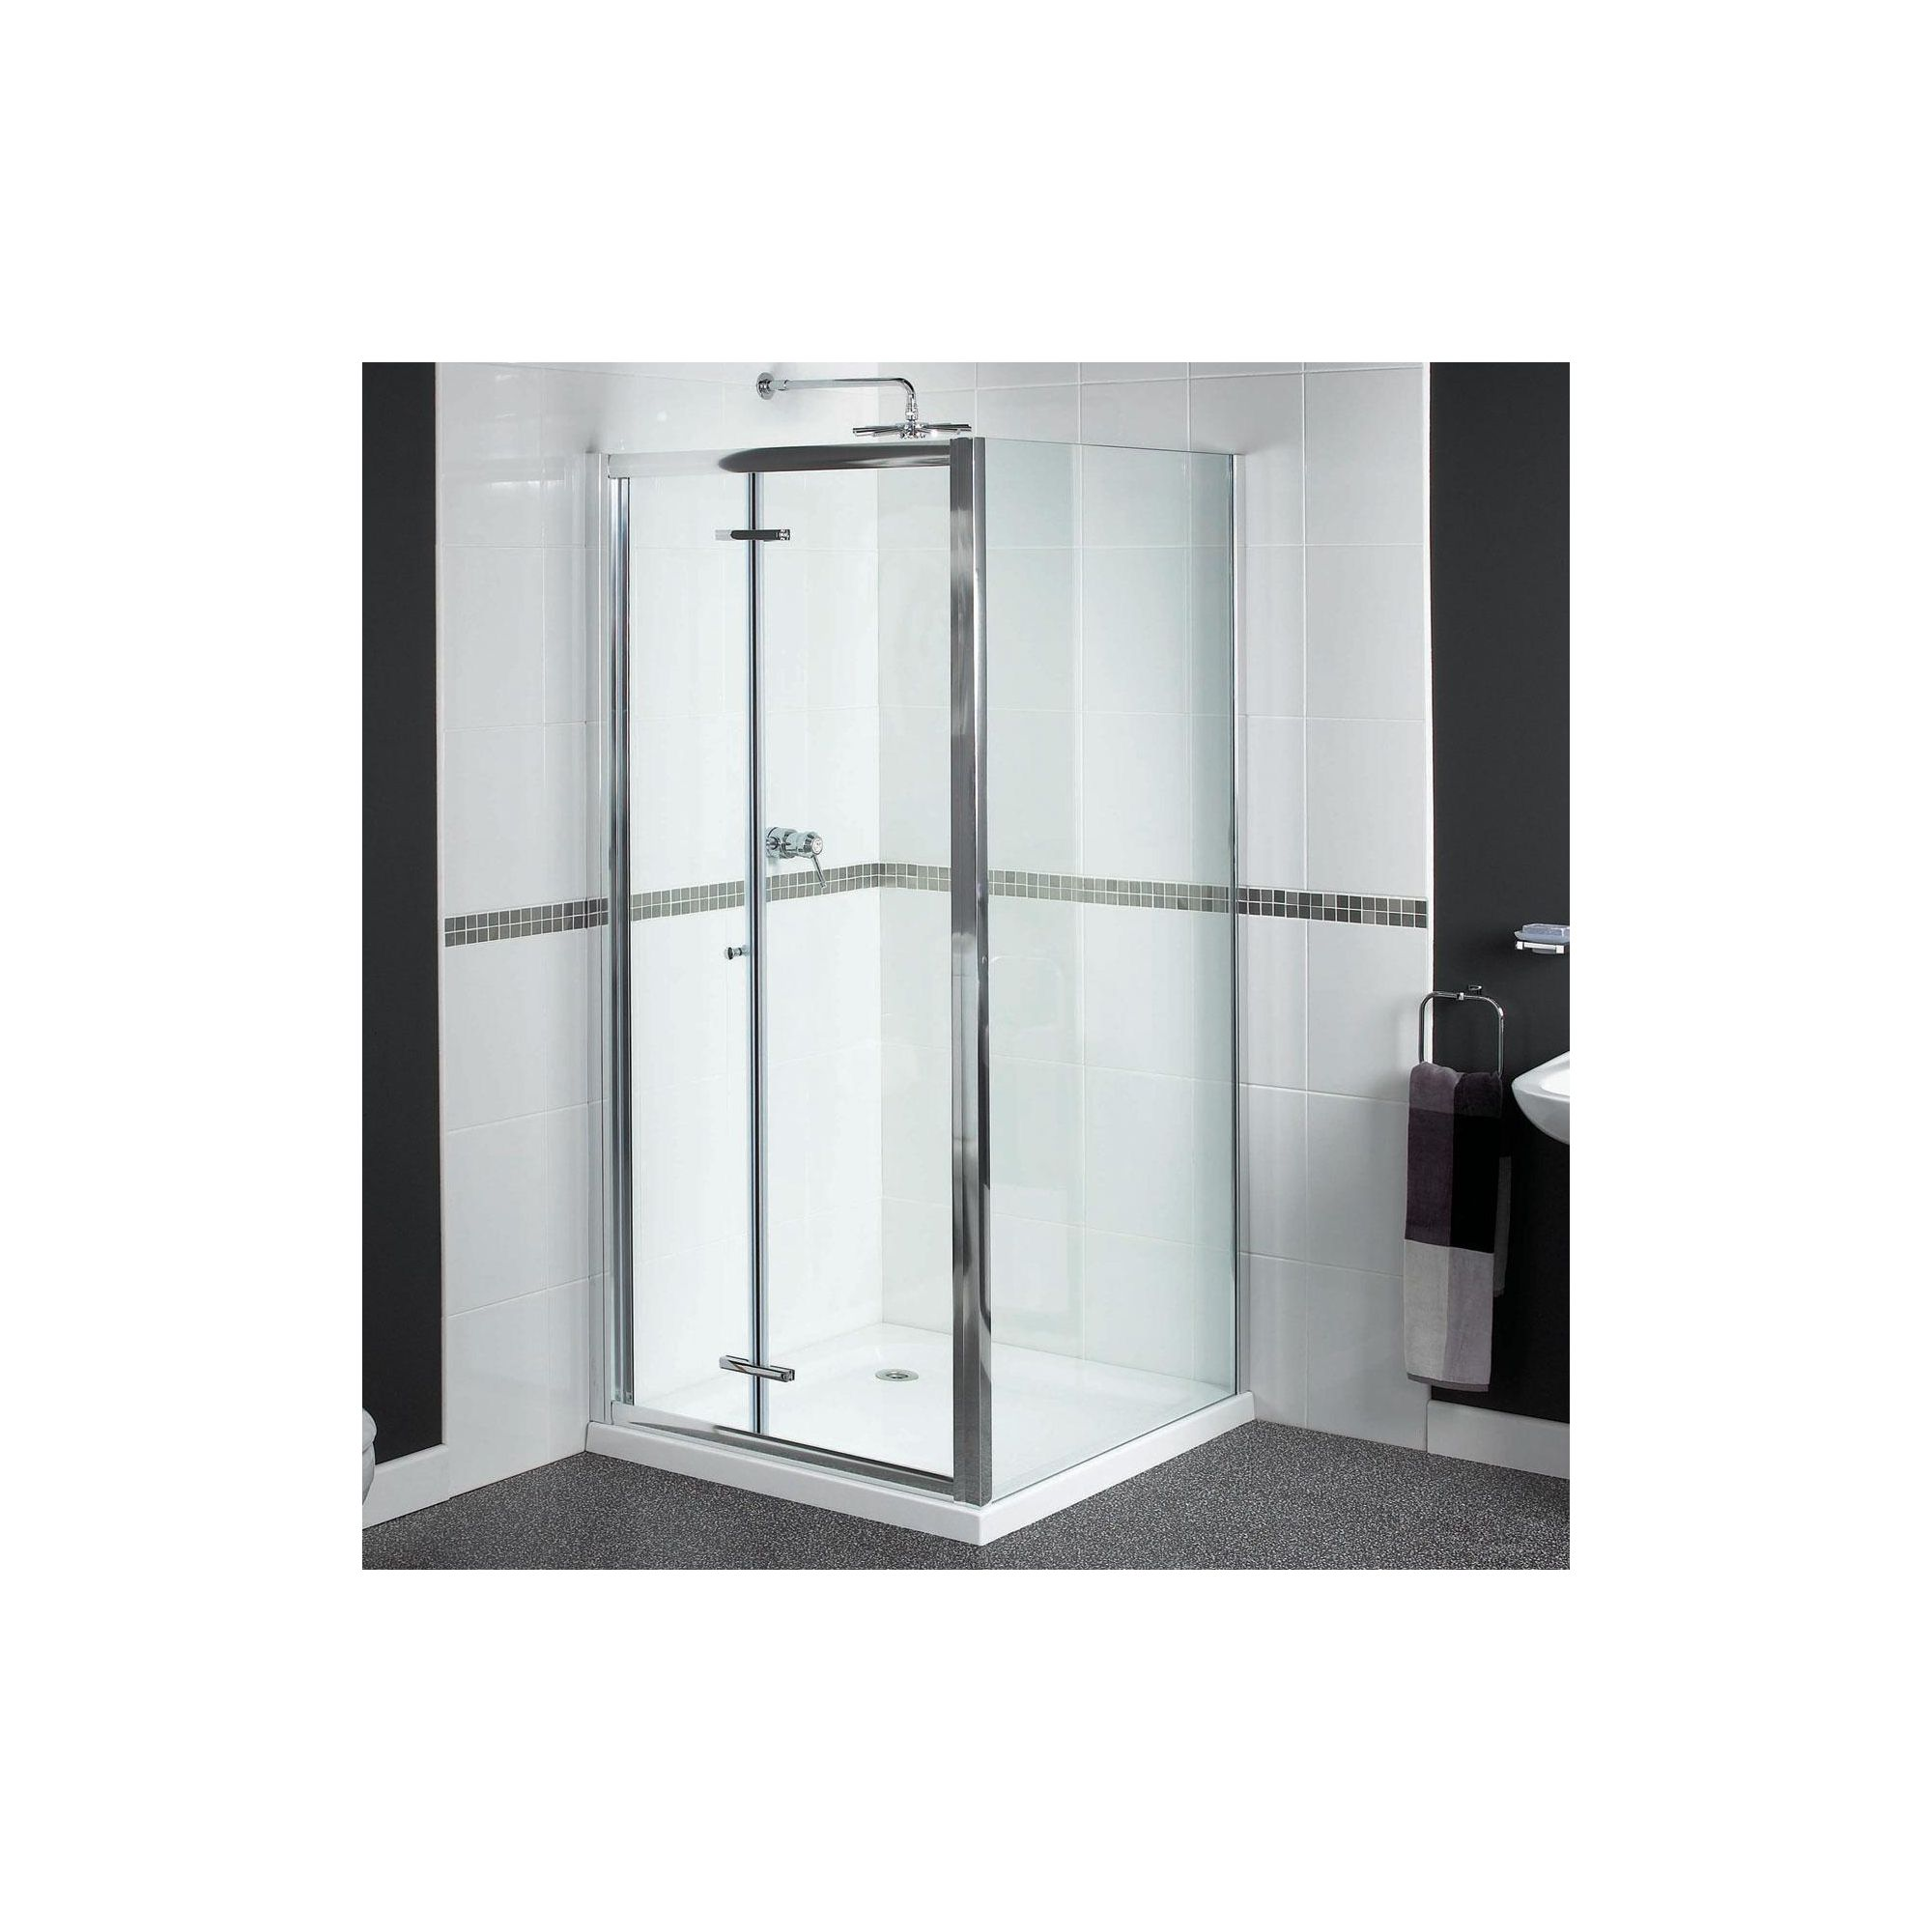 Aqualux Shine Bi-Fold Shower Door, 900mm Wide, Polished Silver Frame, 6mm Glass at Tesco Direct